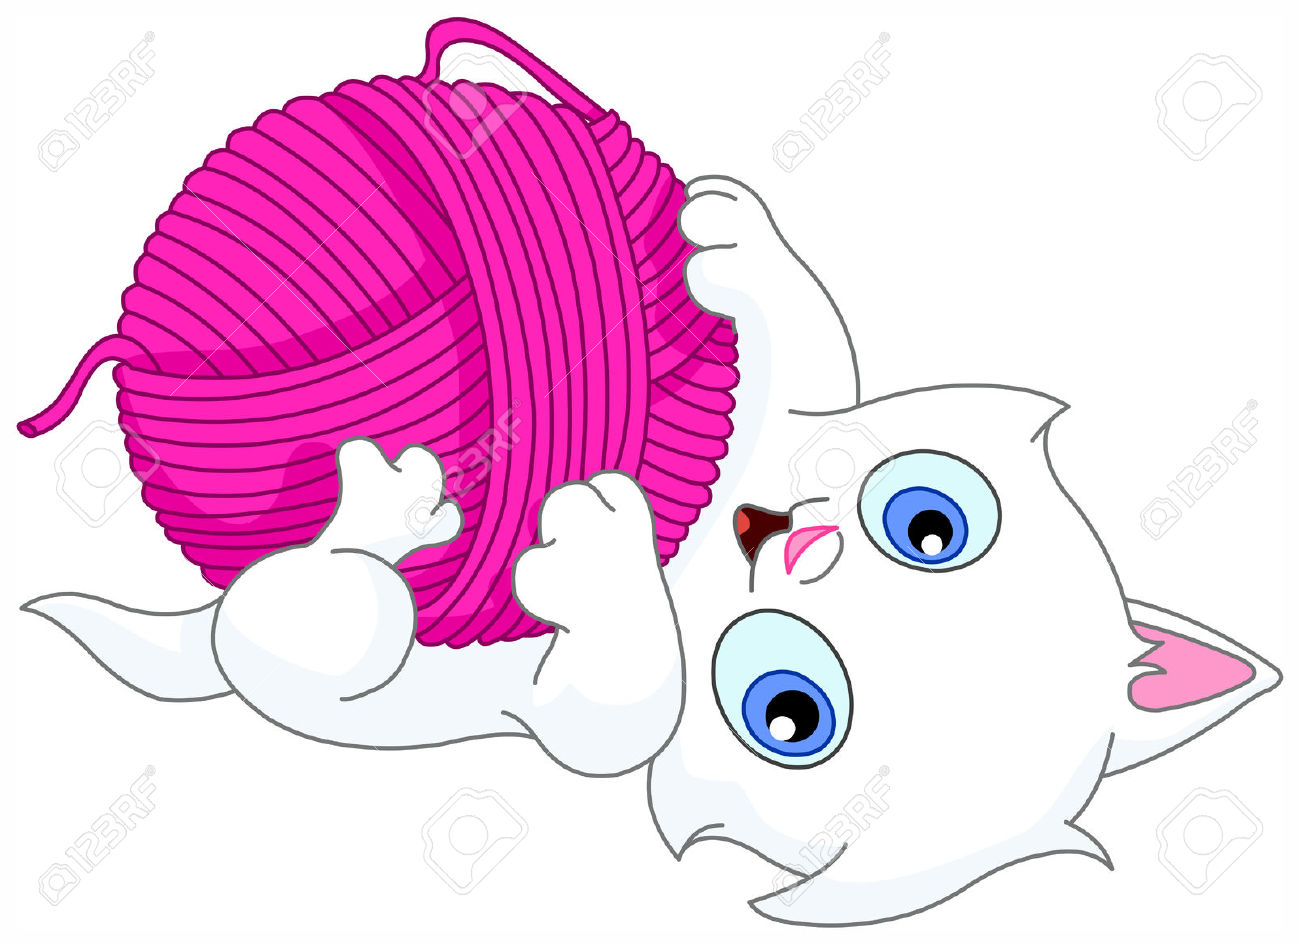 1300x945 Kitten Playing With Yarn Clipart Amp Kitten Playing With Yarn Clip